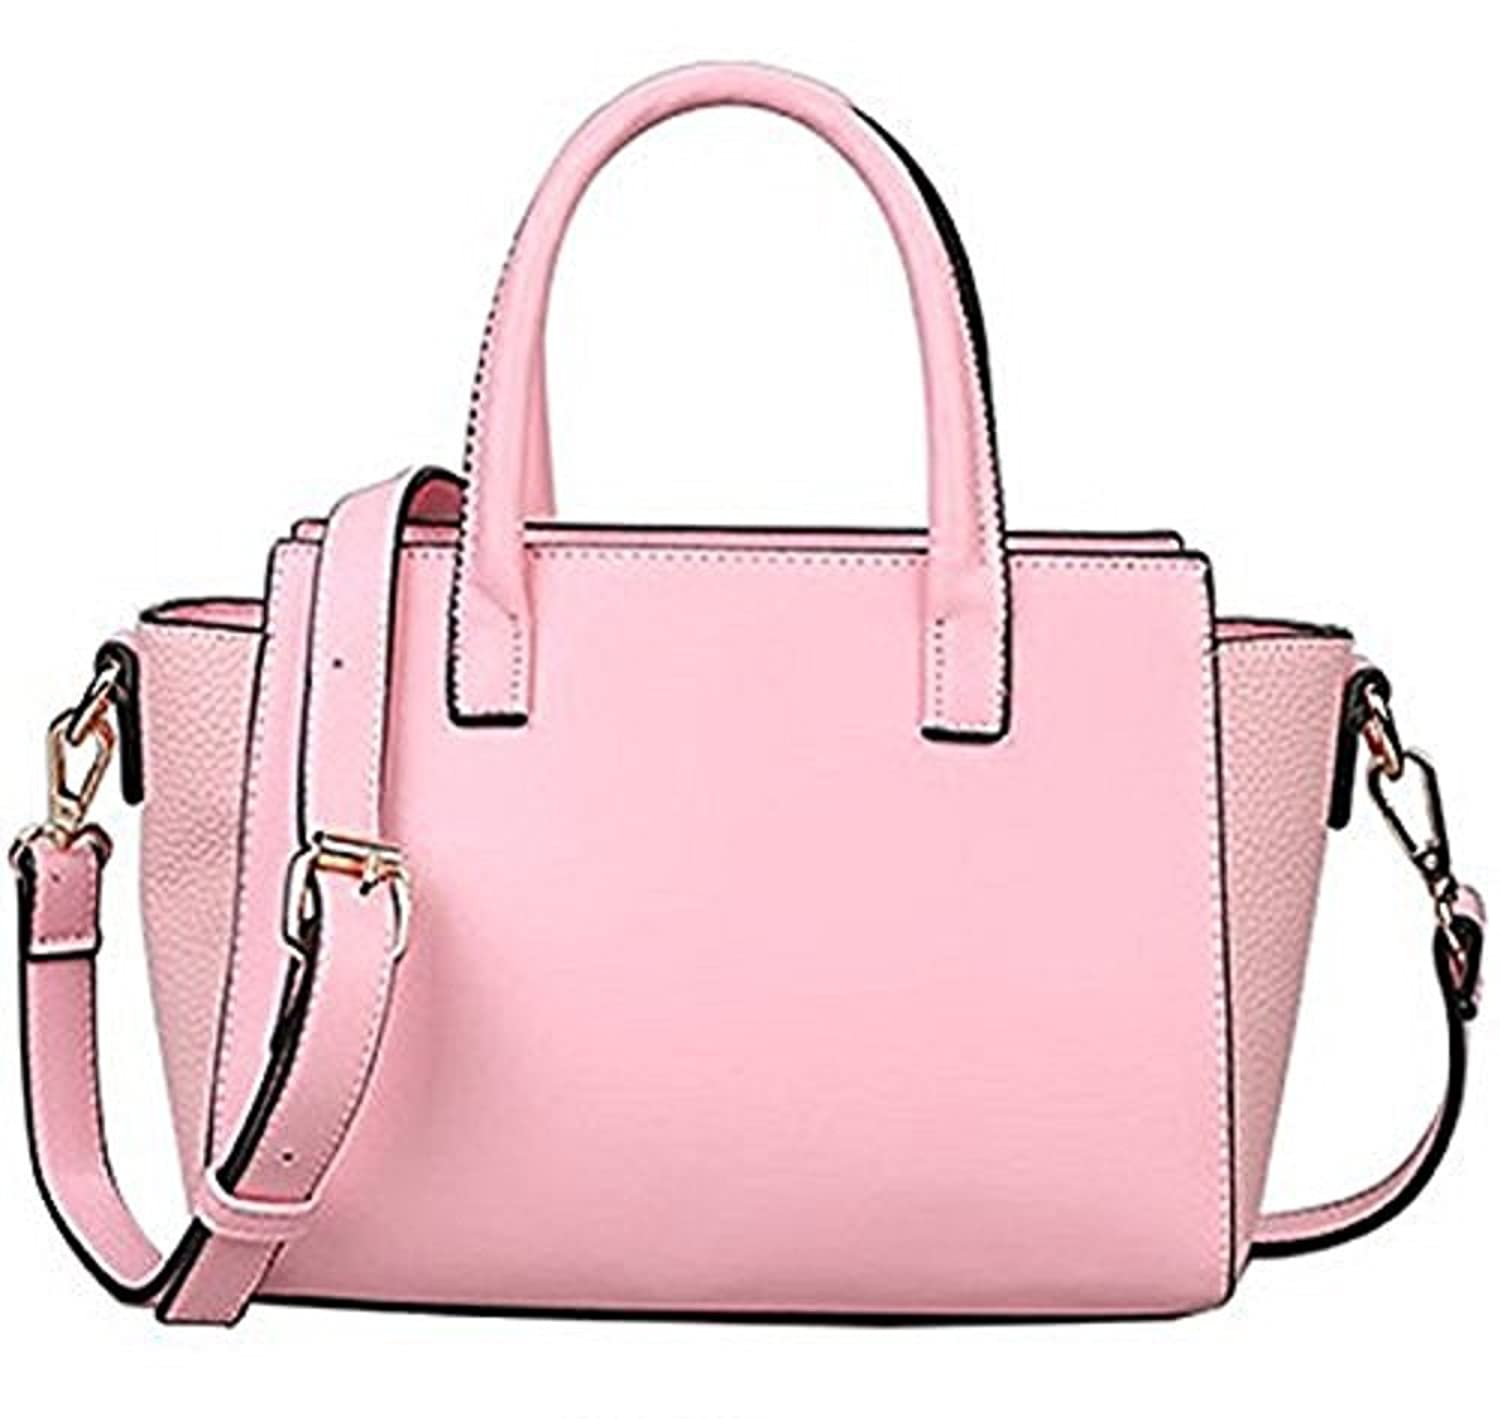 all match and new fashion woman girl bag clutches cross-body bag tote bag satchels PU leather bag--fast delivery in one week